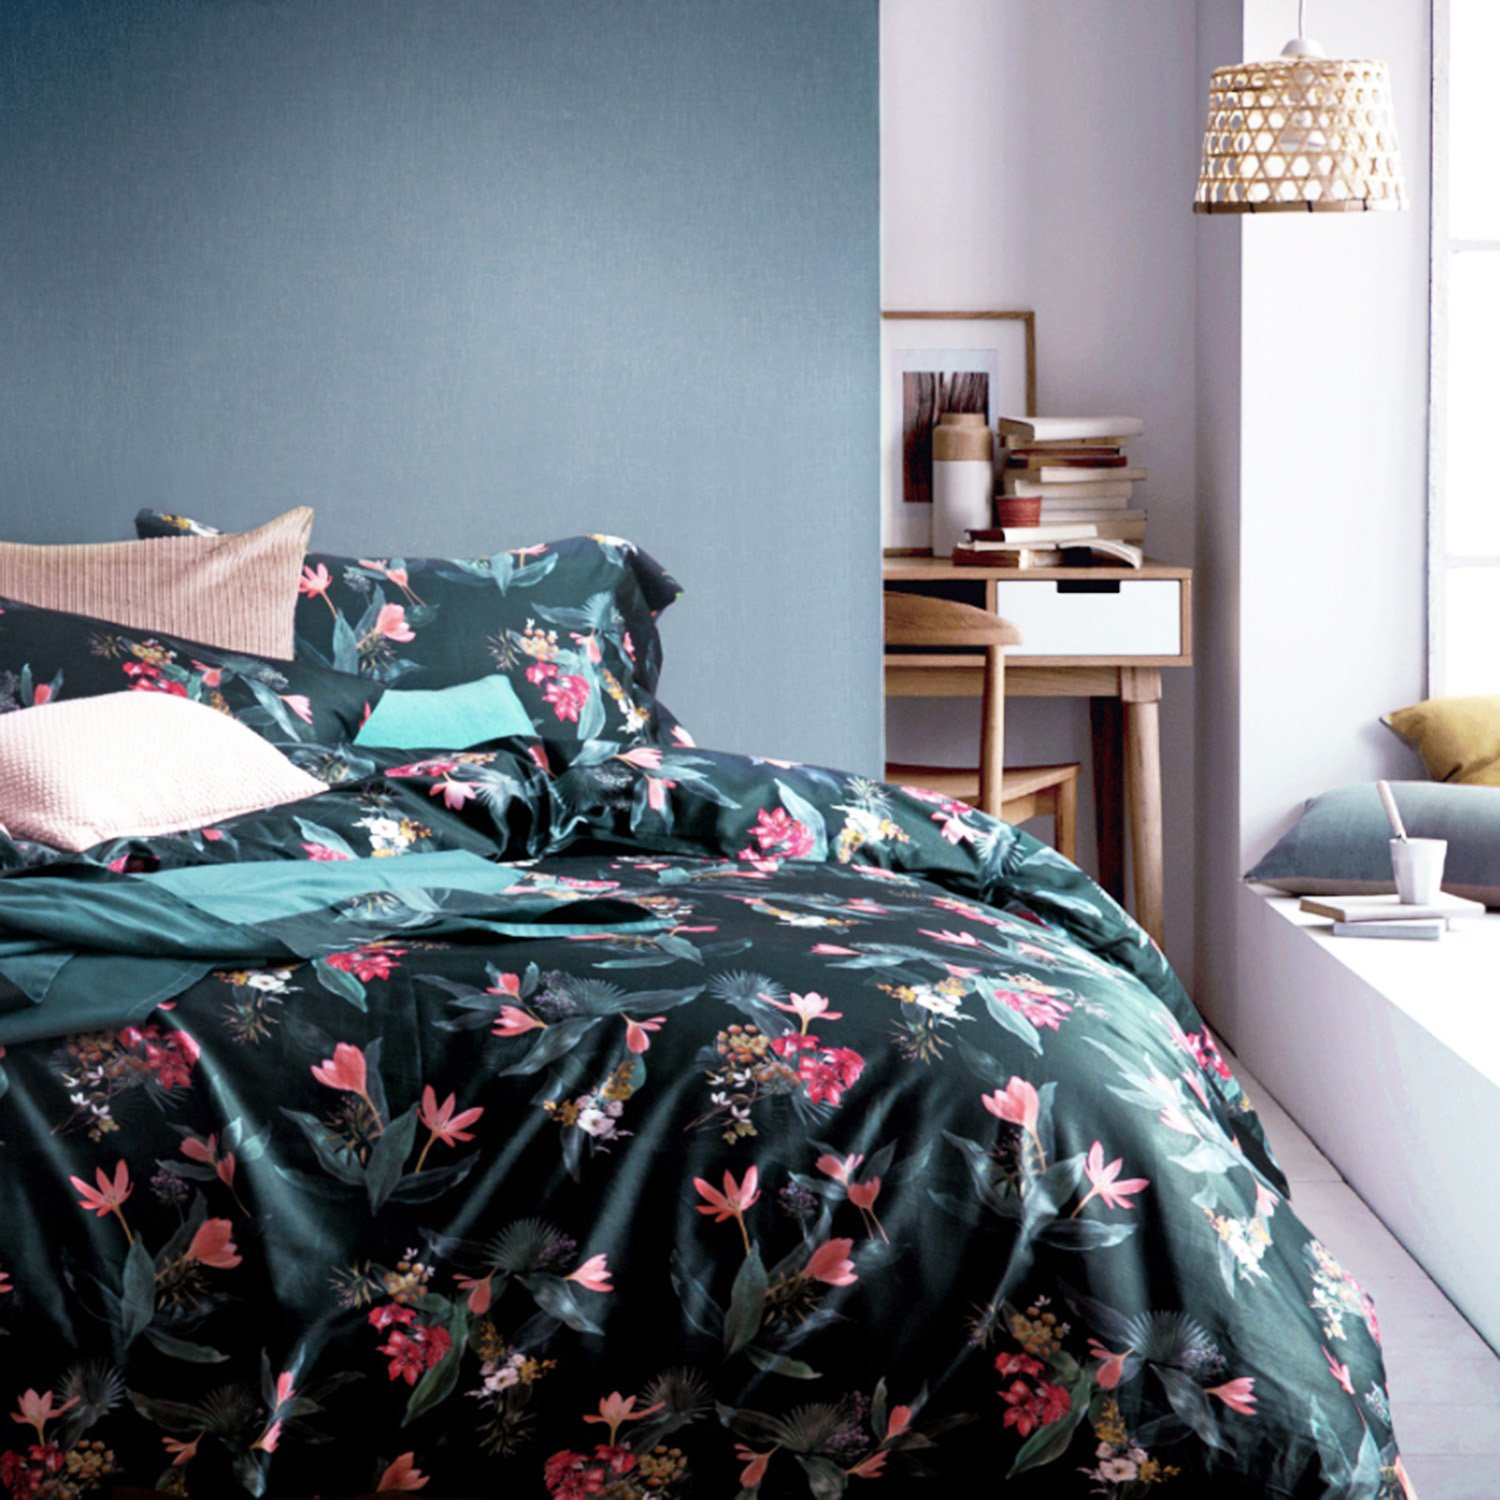 is quilt full bedding set pin from tucked to sweetly make pintuck ombre king iron ruched queen sheets dyed of way how duvets covers best own zipper size a simple uk cover customize out rit work your us smartgirlstyle material with inspired what sheet big dimensions duvet comforter diy